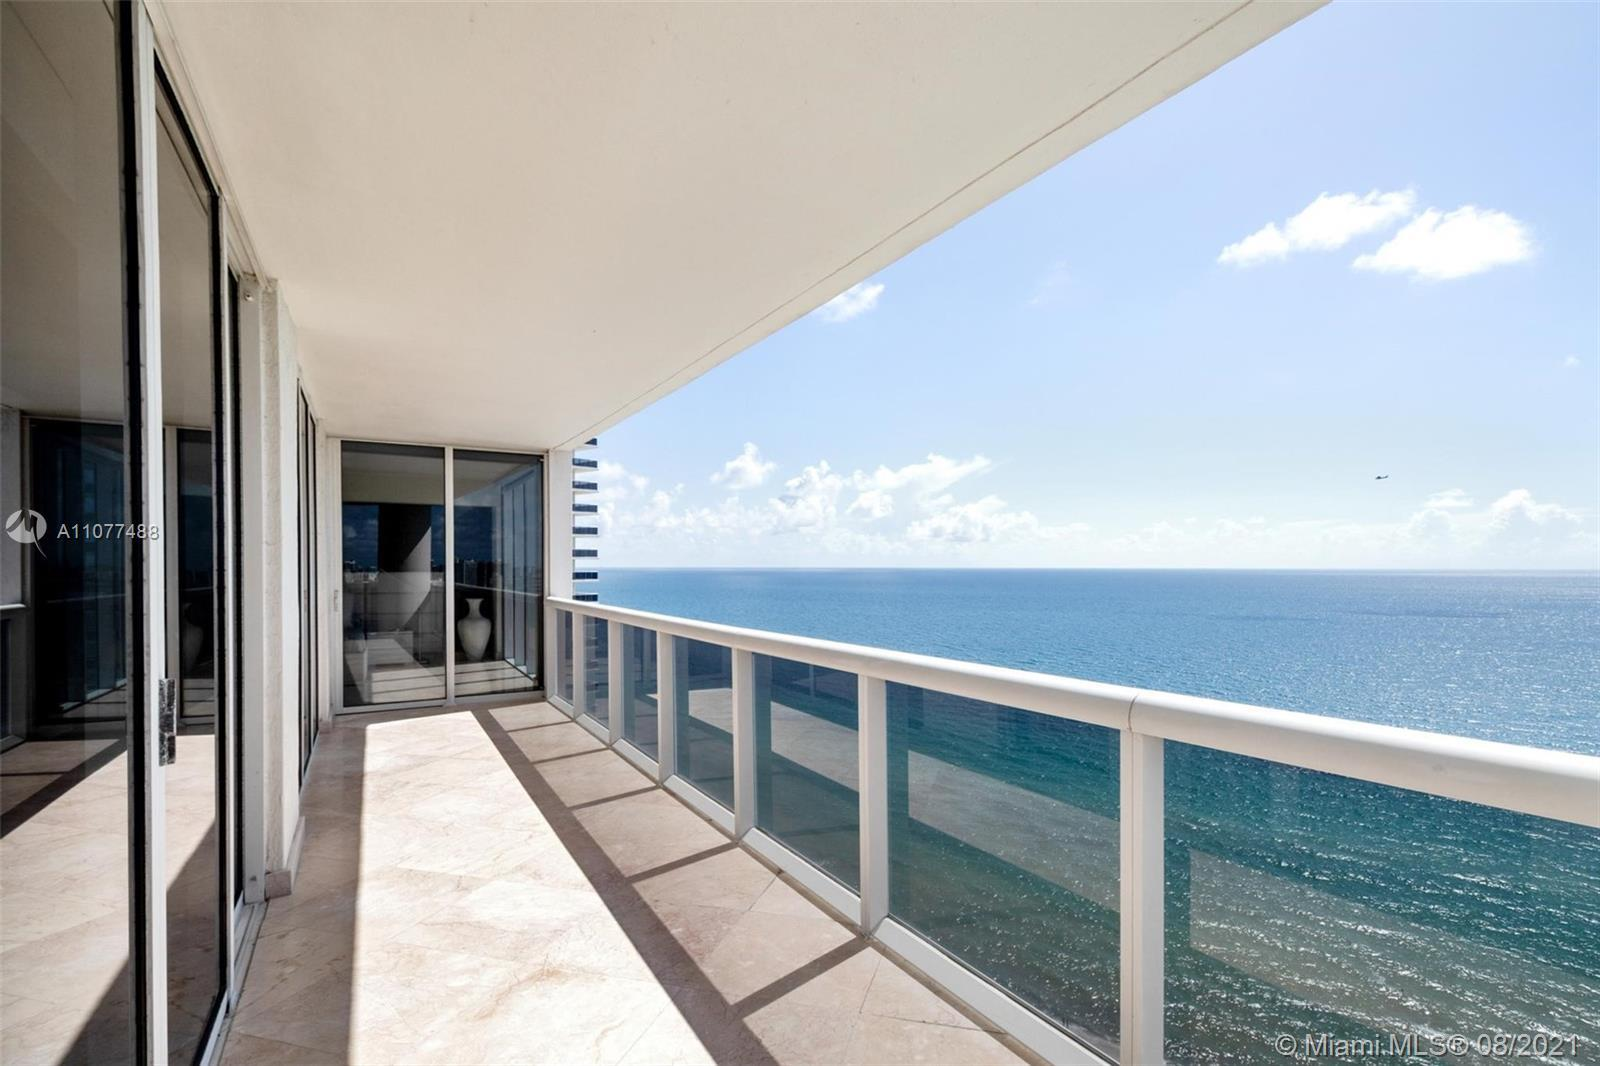 Coveted SE corner with unobstructed direct ocean views that extend all the way to Golden Beach, Sunn